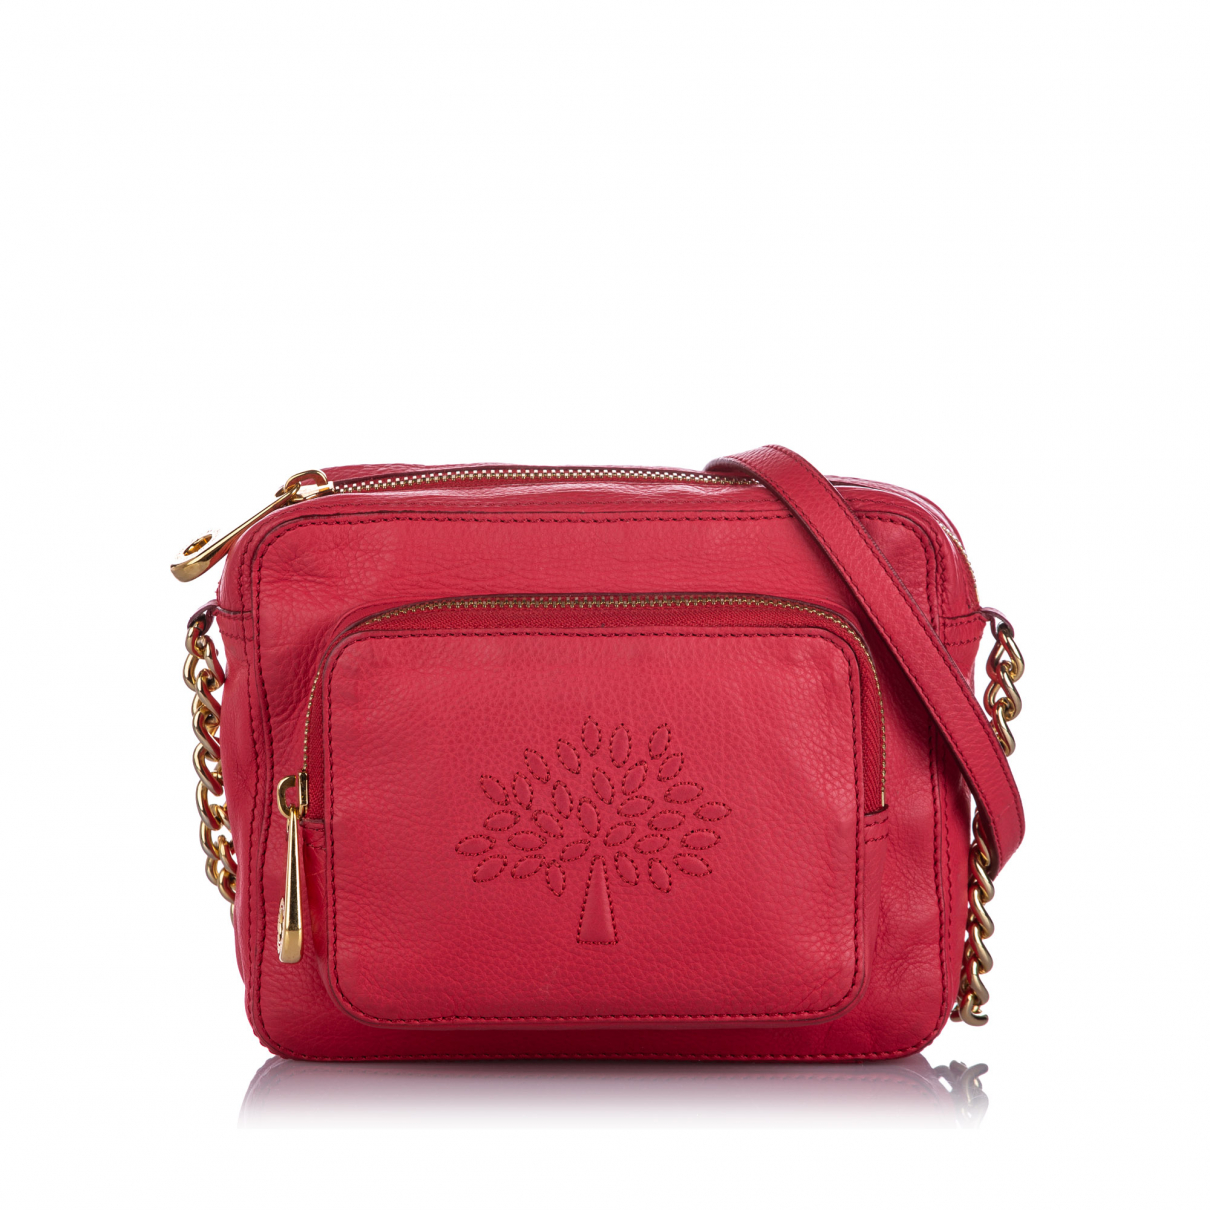 Mulberry \N Red Leather handbag for Women \N